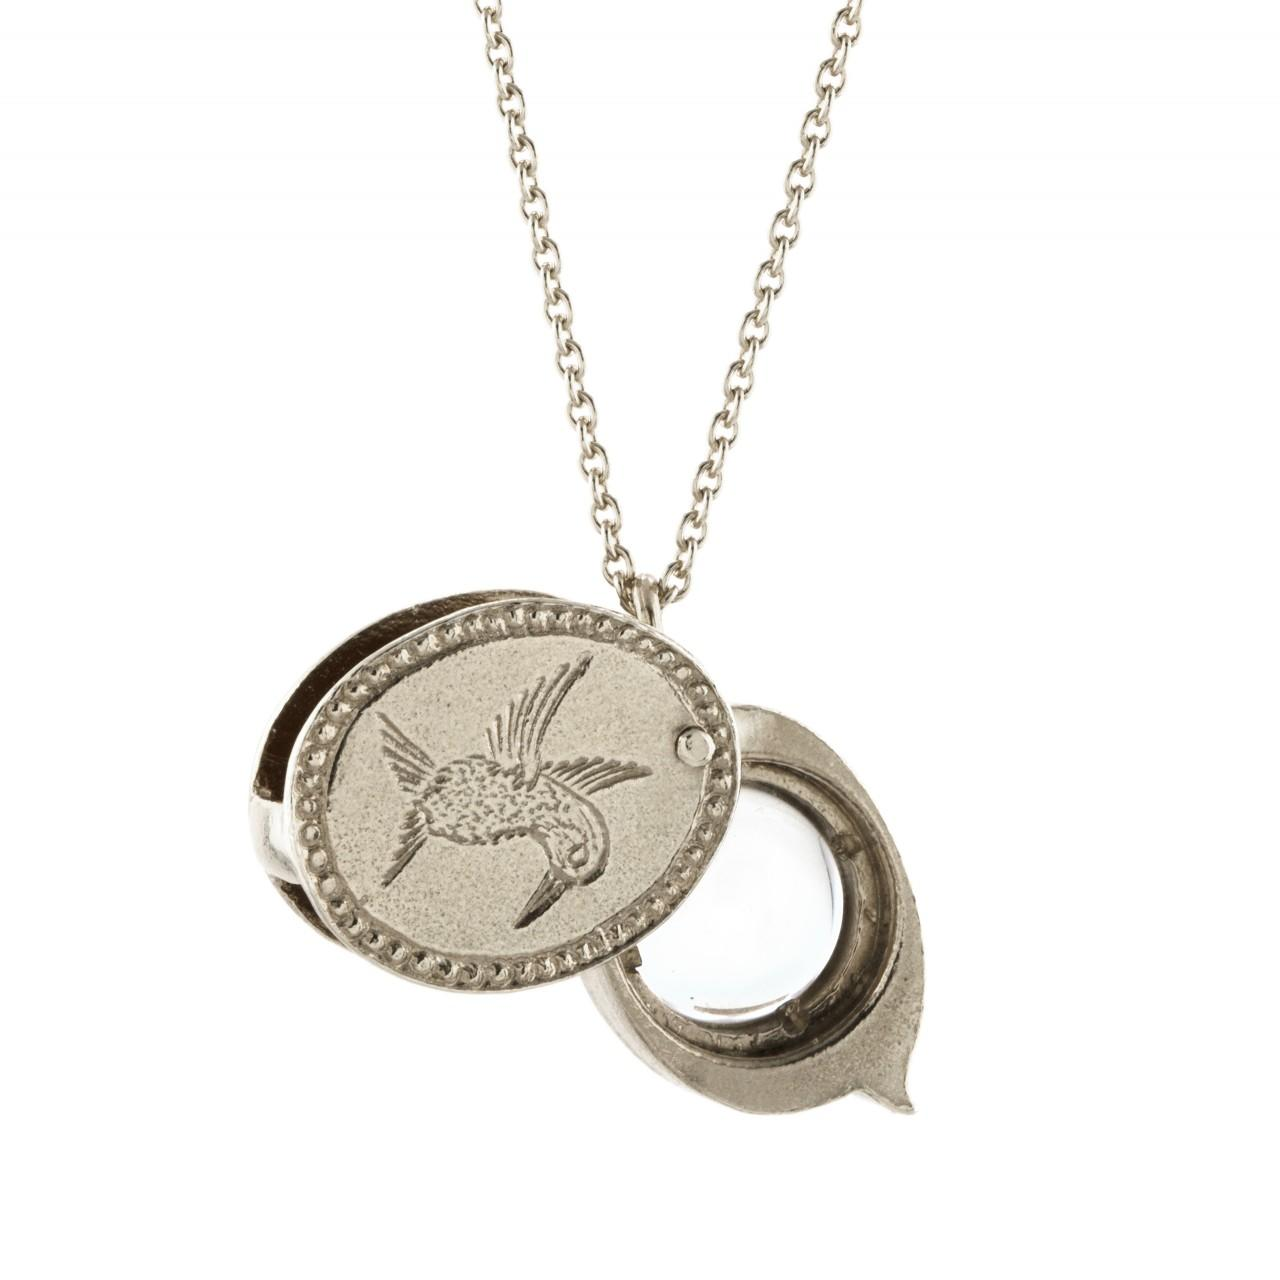 Solid silver field loupe necklace £195 (available in store only)